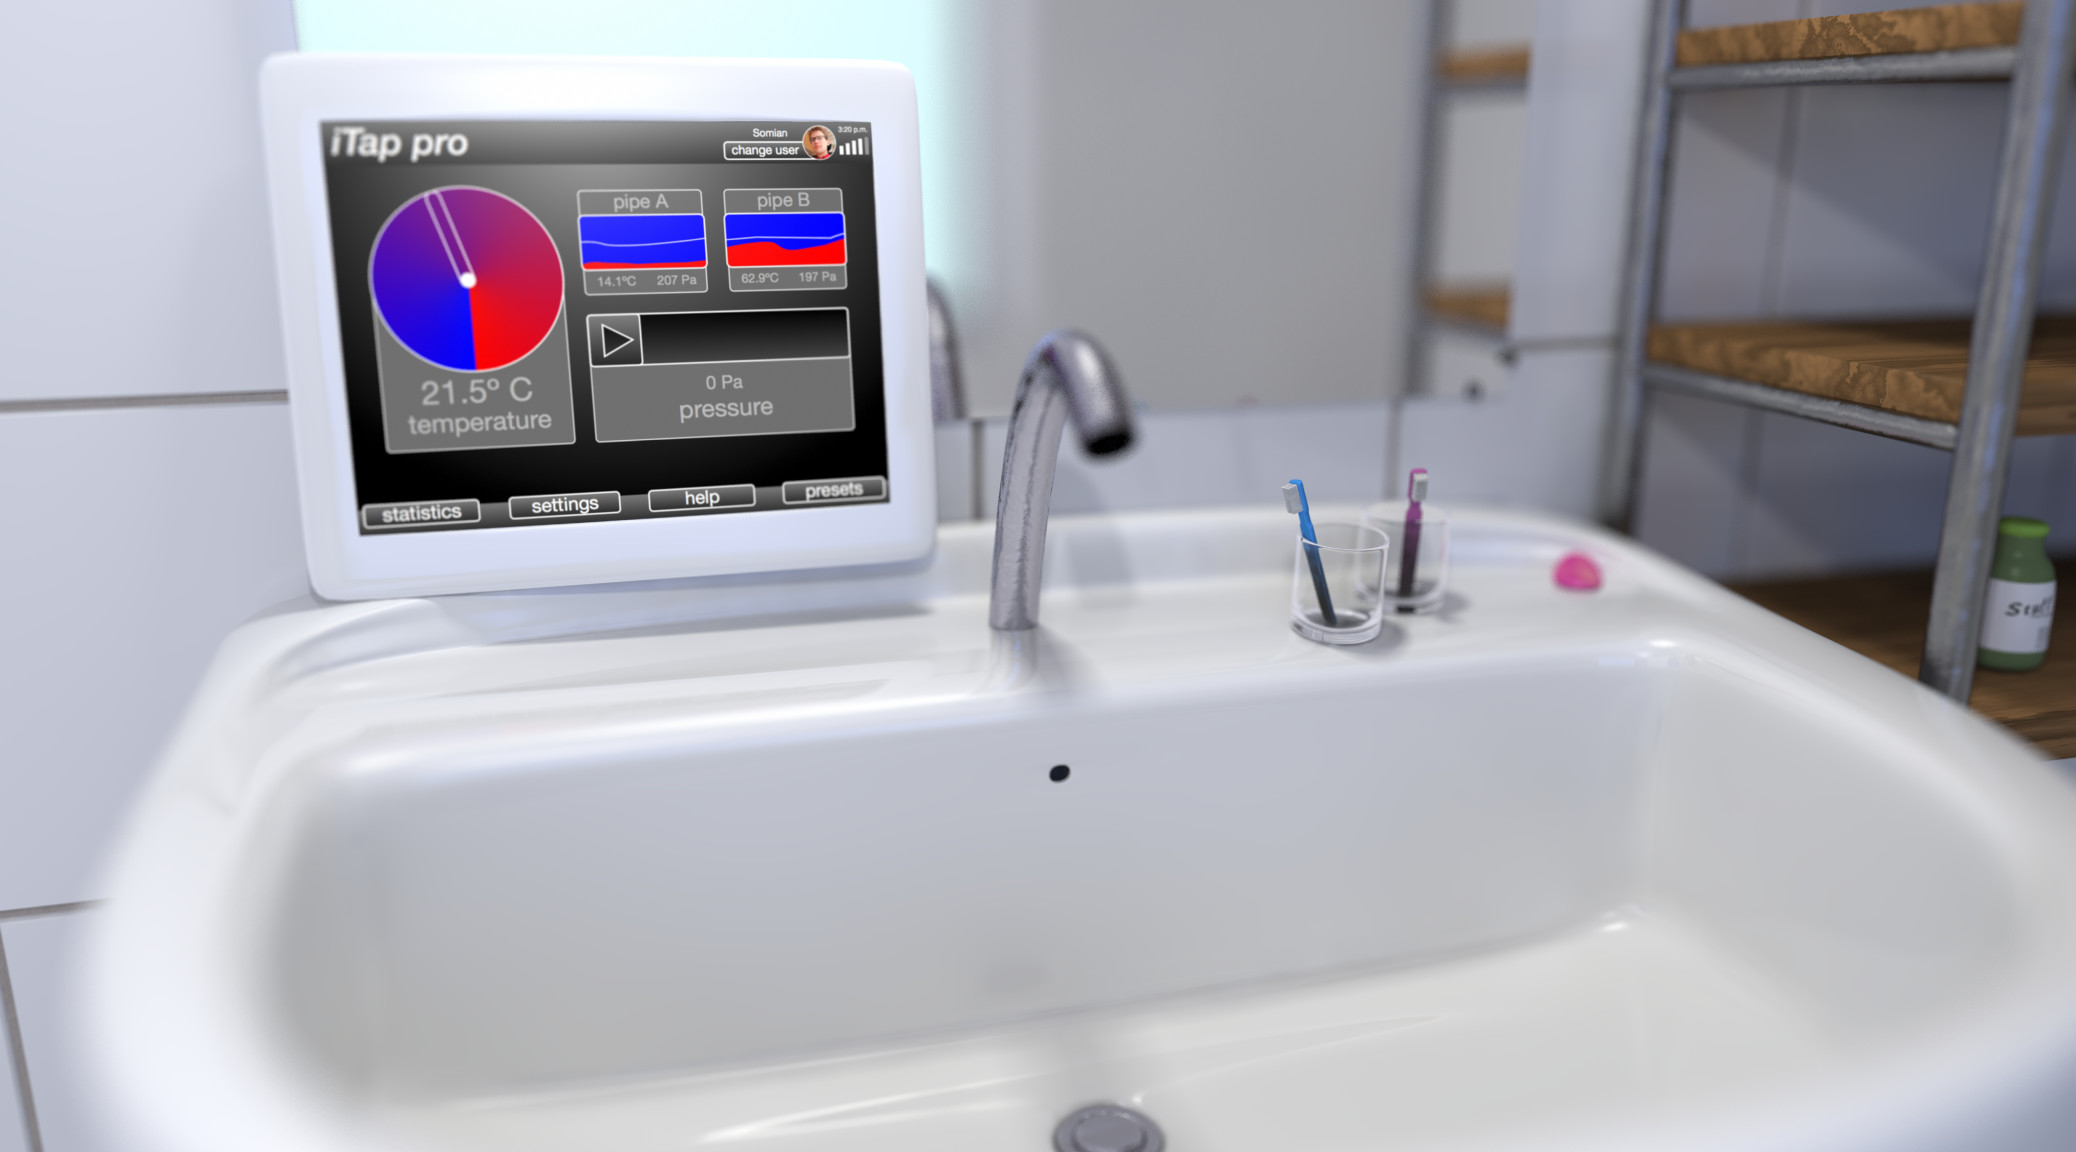 A faucet controlled by a touchscreen